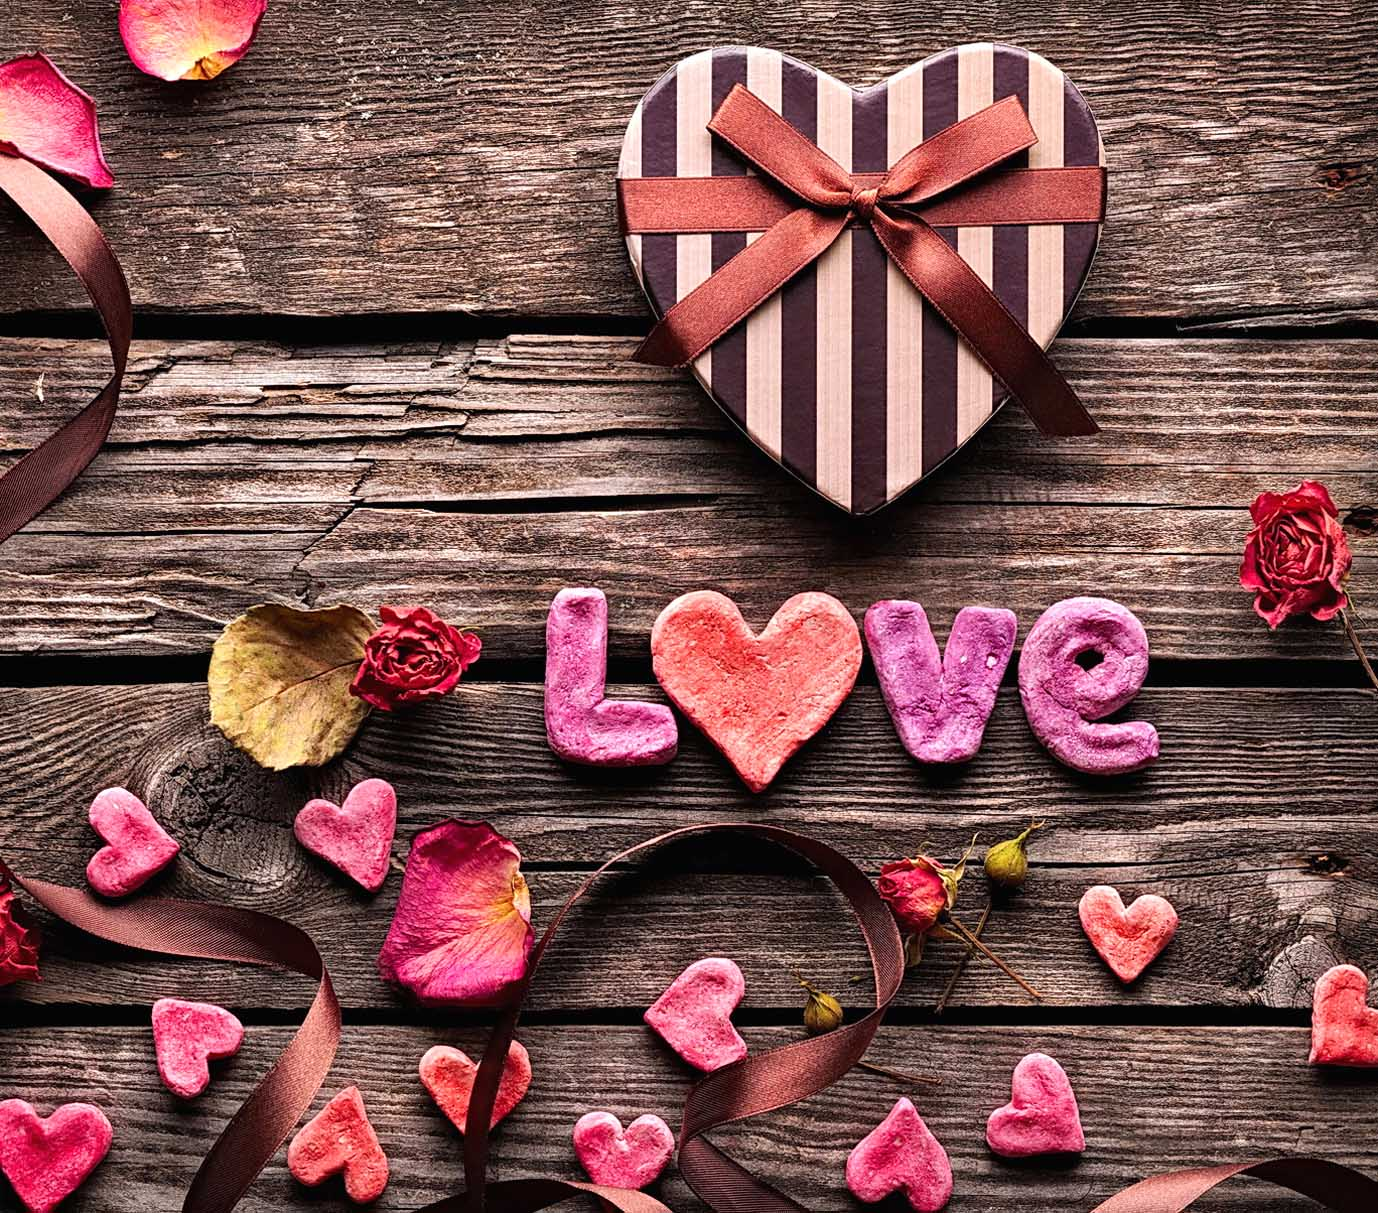 Mobile Love Wallpapers Free Download - Wallpapers HD Fine